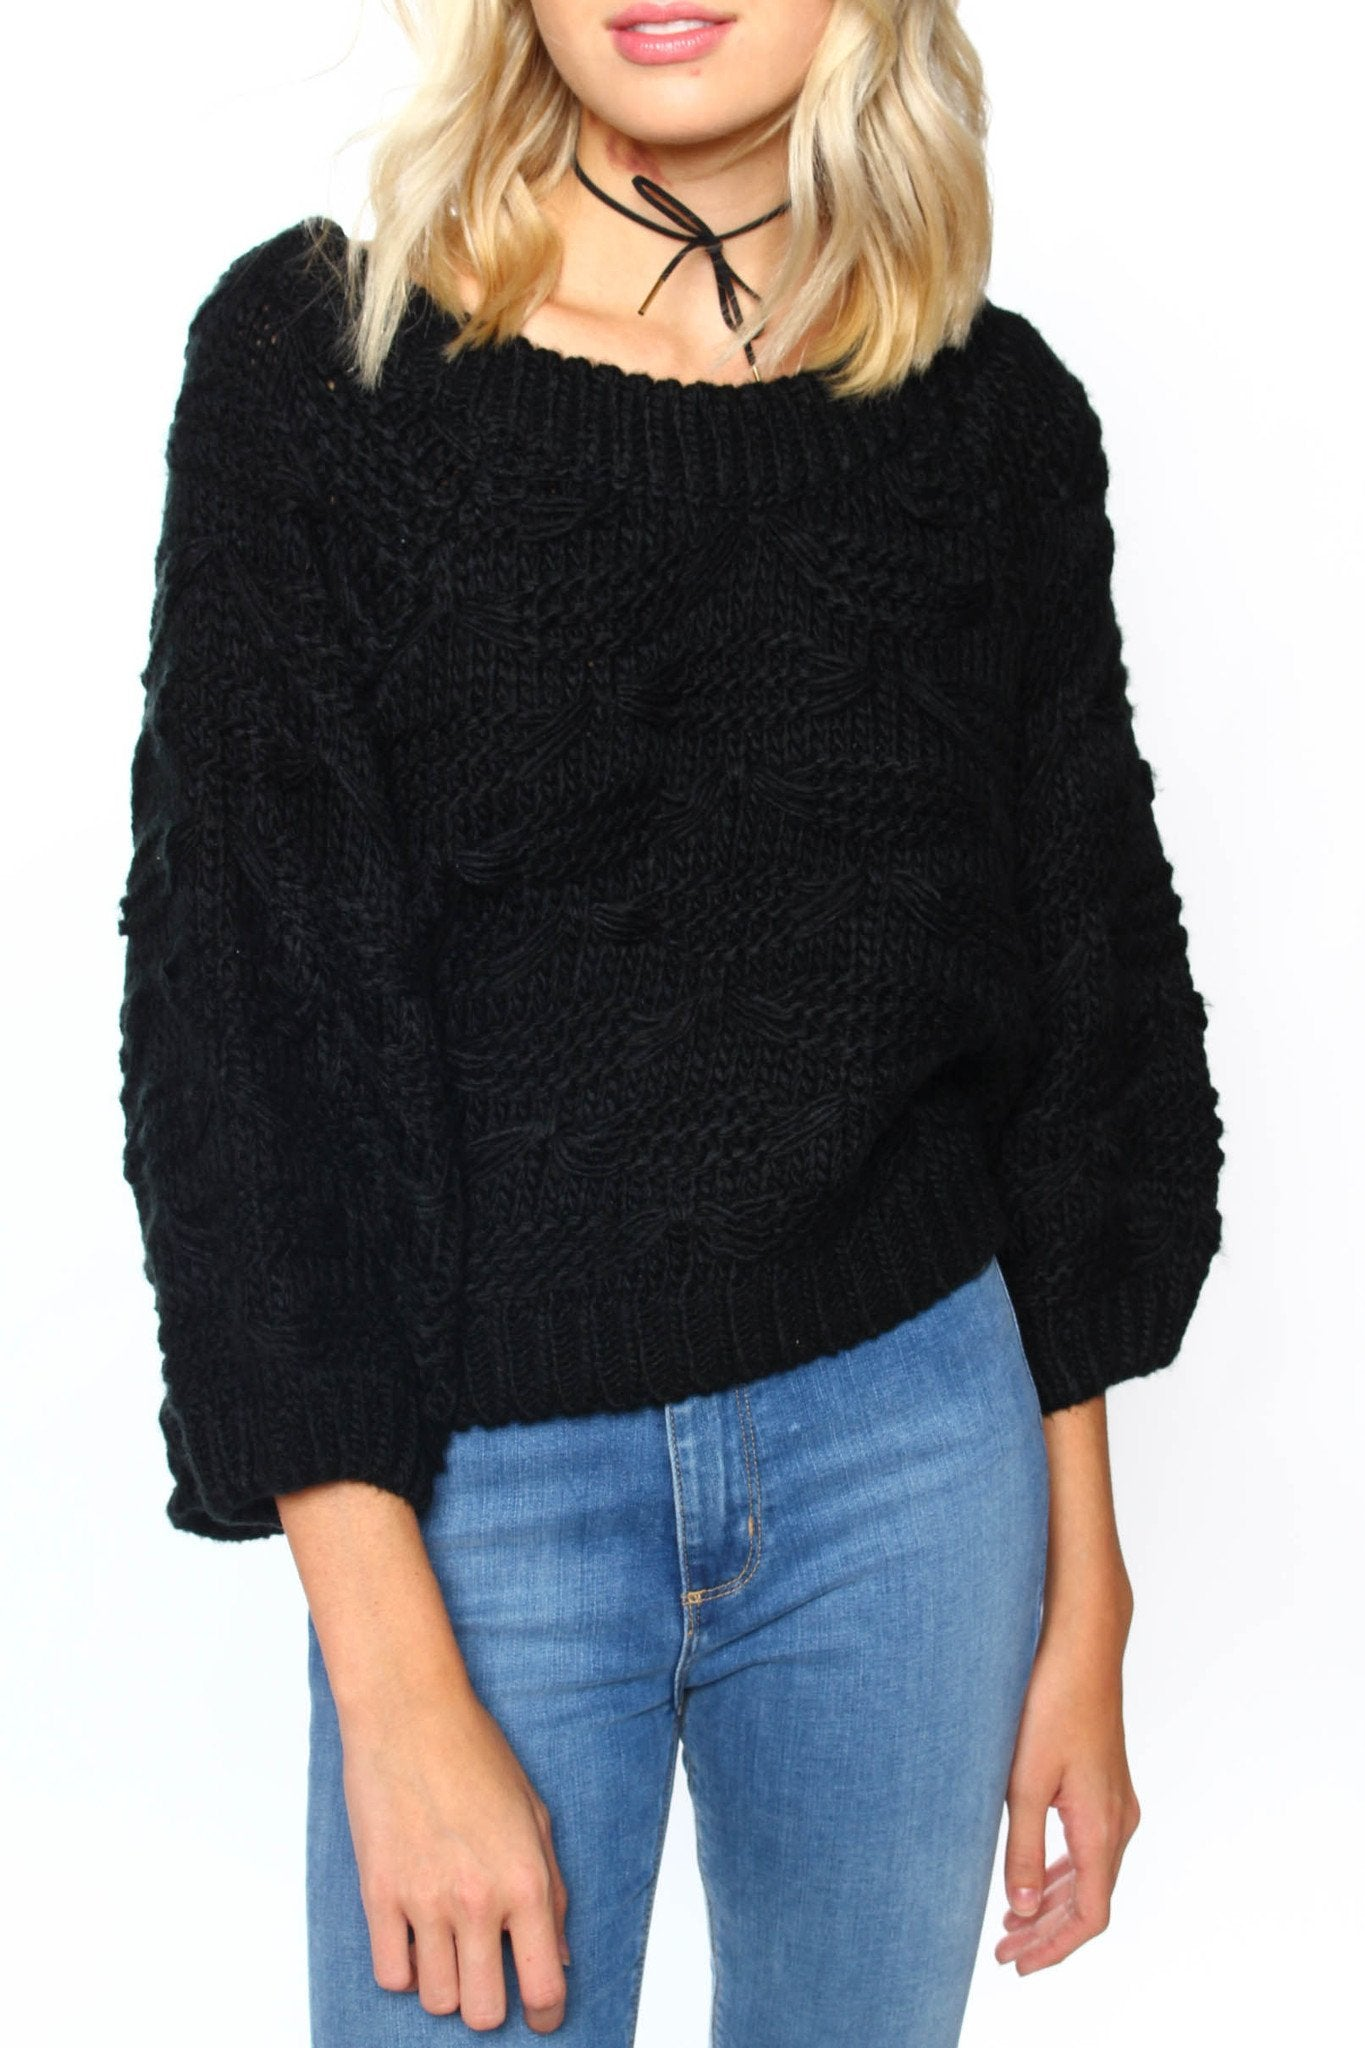 Somedays Lovin' Back At The Ranch Crop Knit